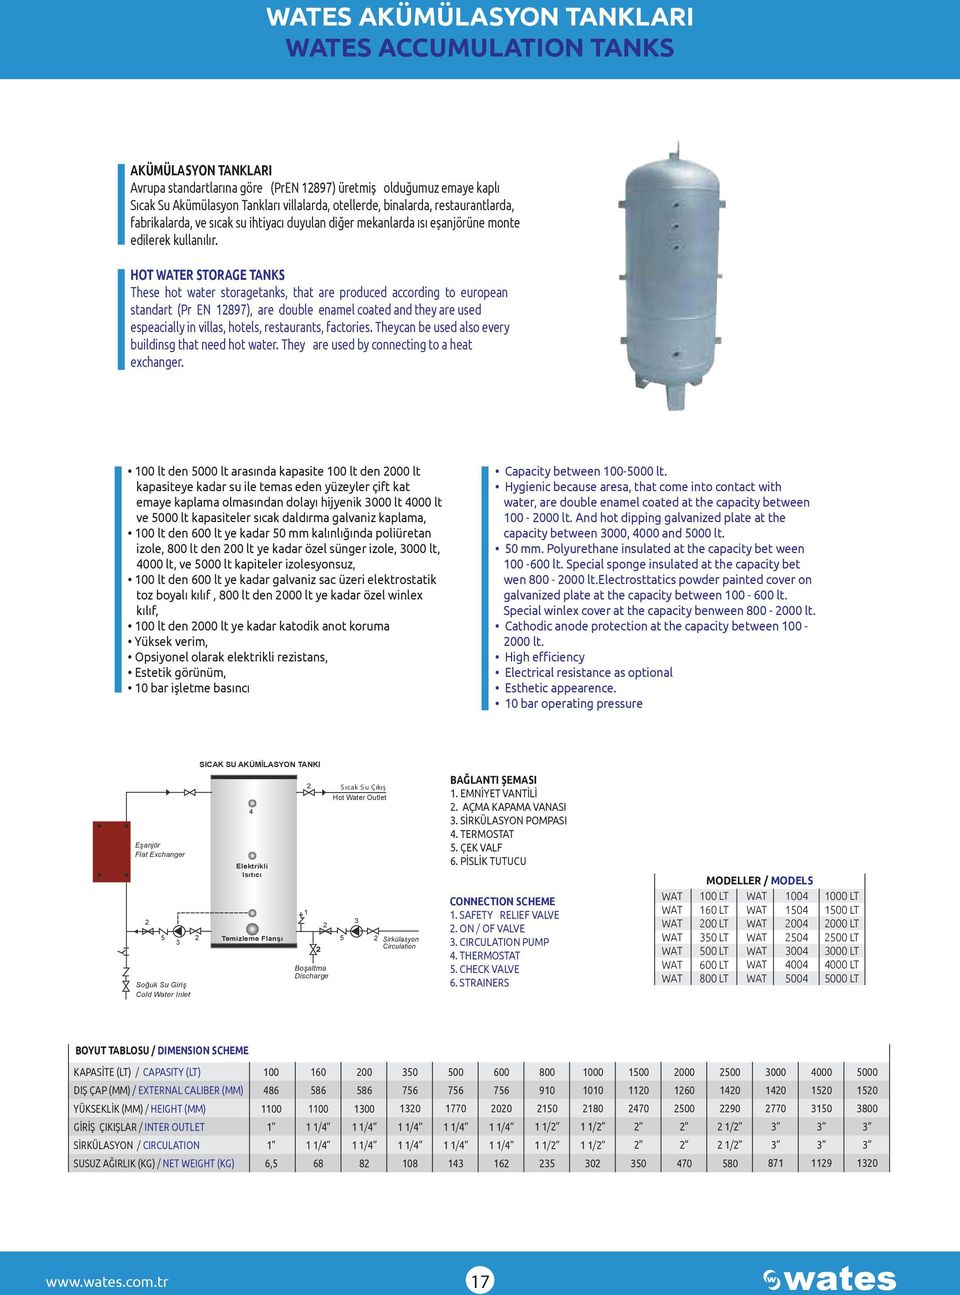 T ER STRAGE TANKS These hot water storagetanks, that are produced according to european standart (Pr EN 1897), are double enamel coated and they are used espeacially in villas, hotels, restaurants,